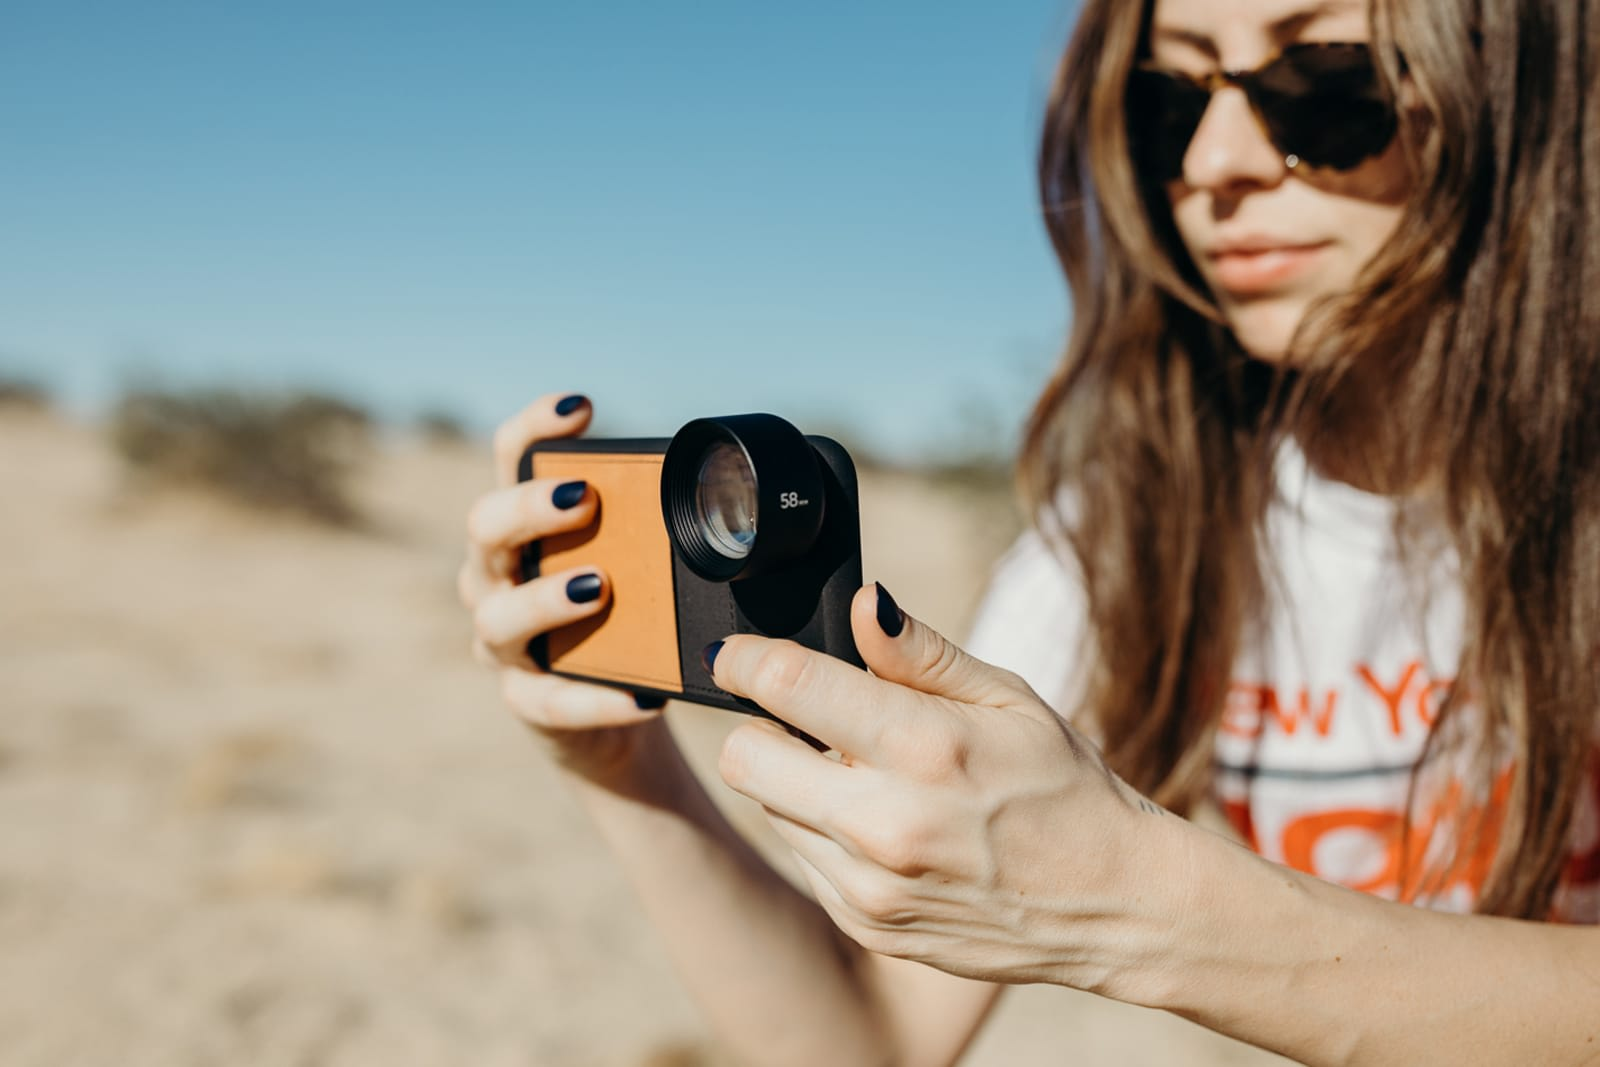 Moment's latest telephoto lens is designed for newer phones